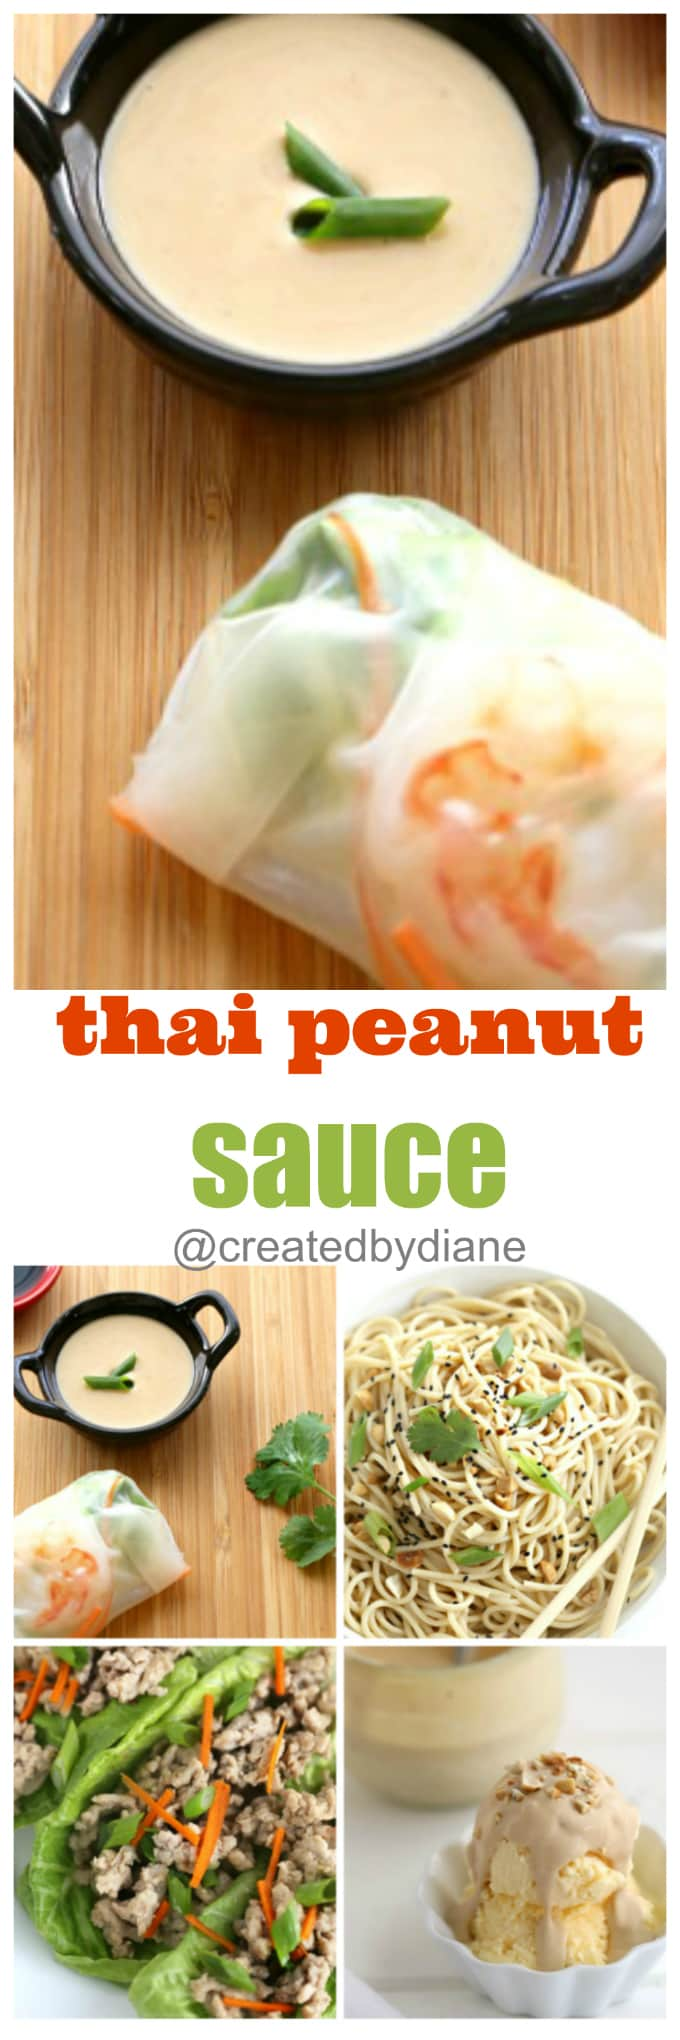 thai peanut sauce recipe for appetizers, spring rolls, pasta, lettuce wraps with chicken and over ice cream @createdbydiane